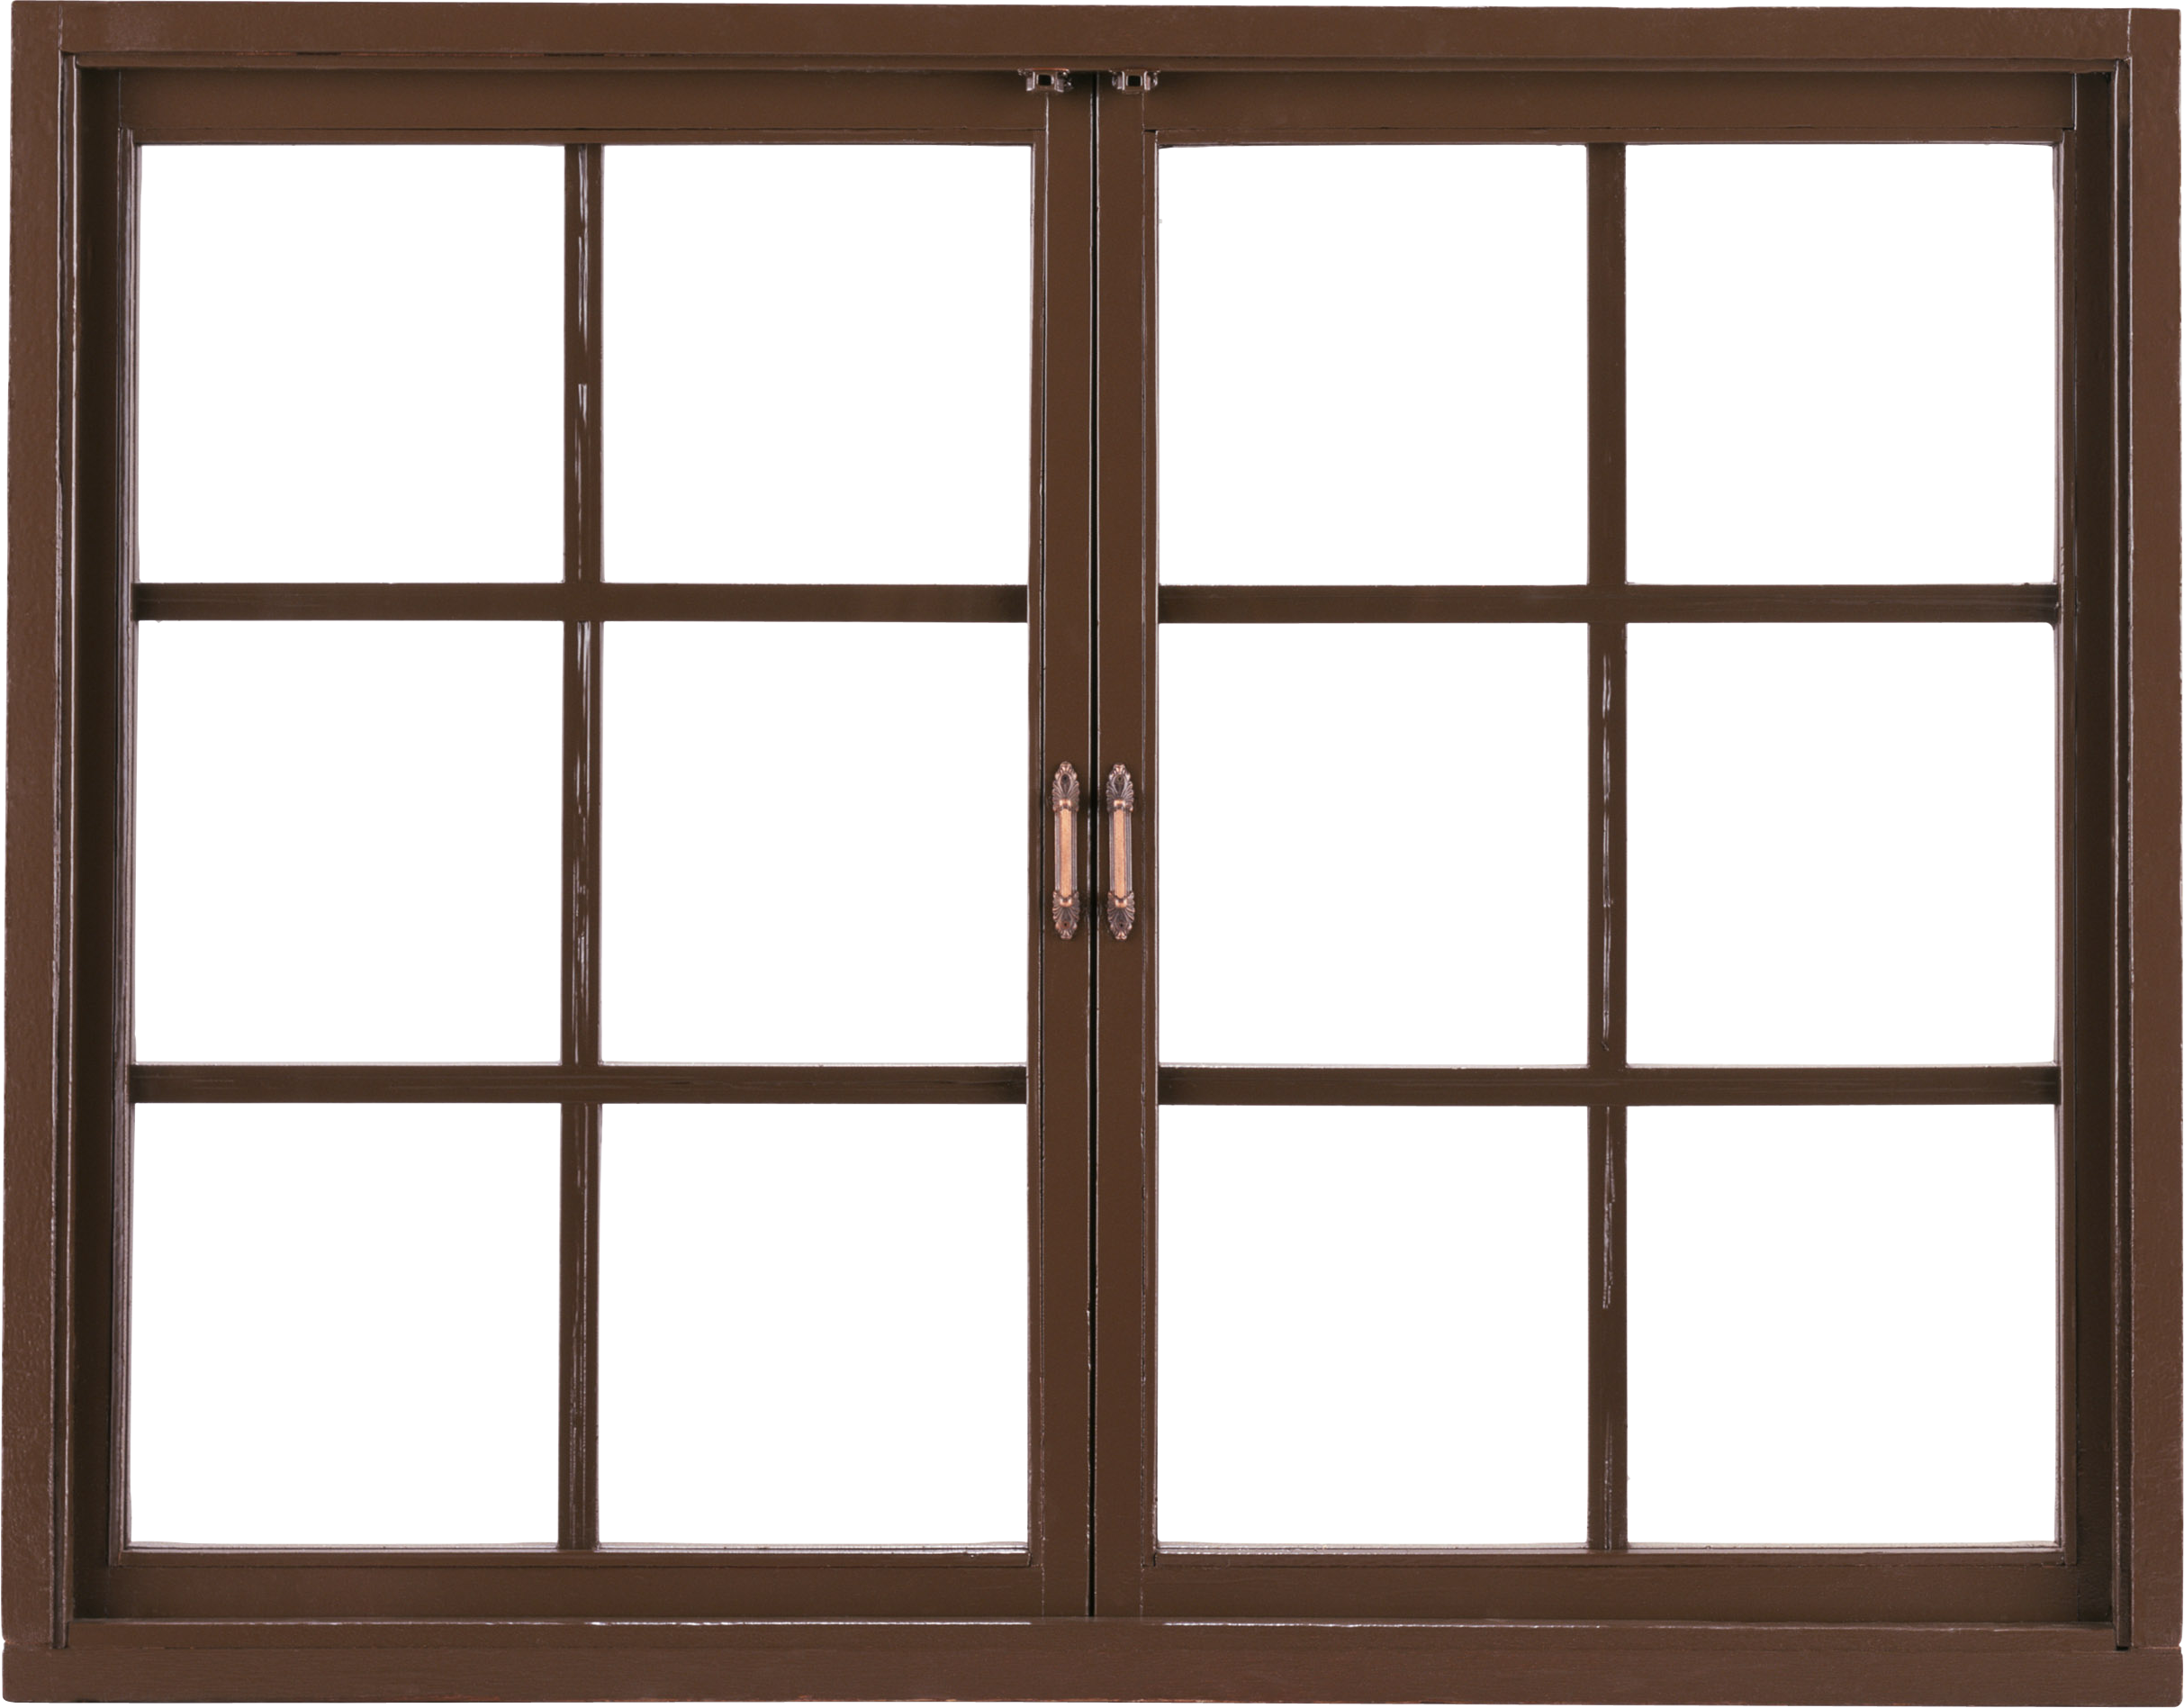 Window png. April onthemarch co